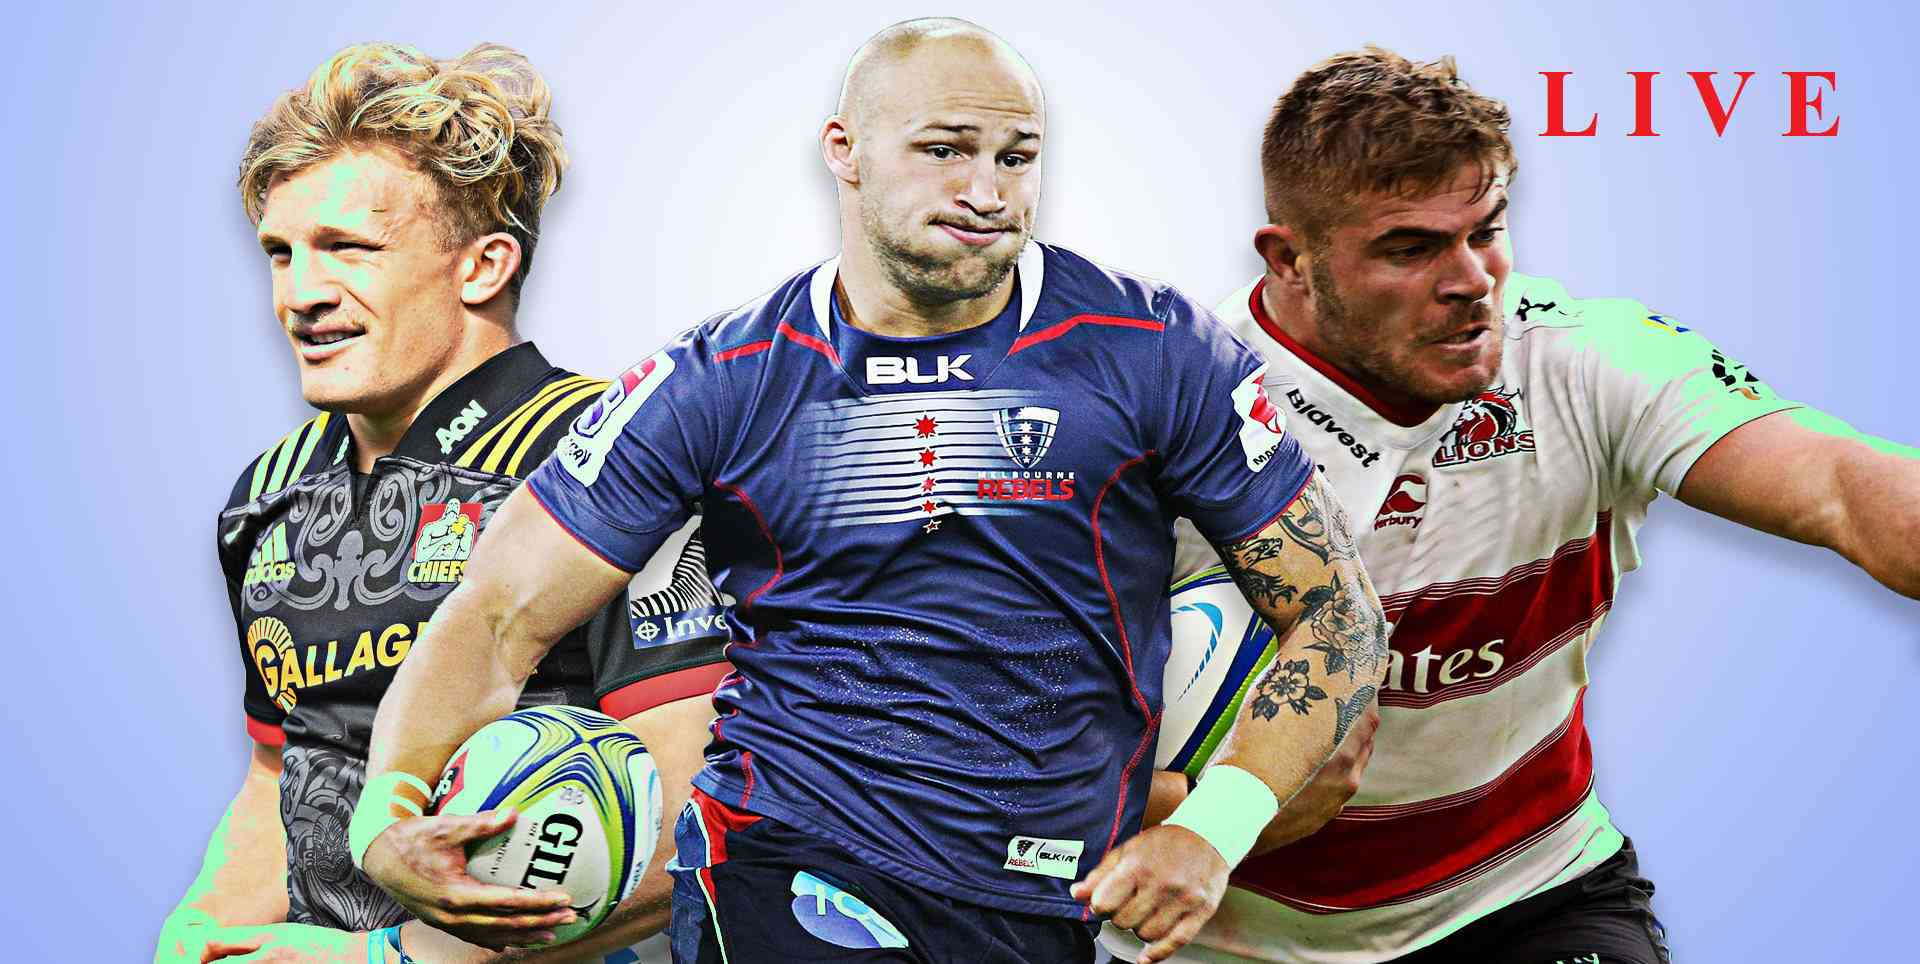 exeter-chief-vs-bordeaux-begles-stream-live